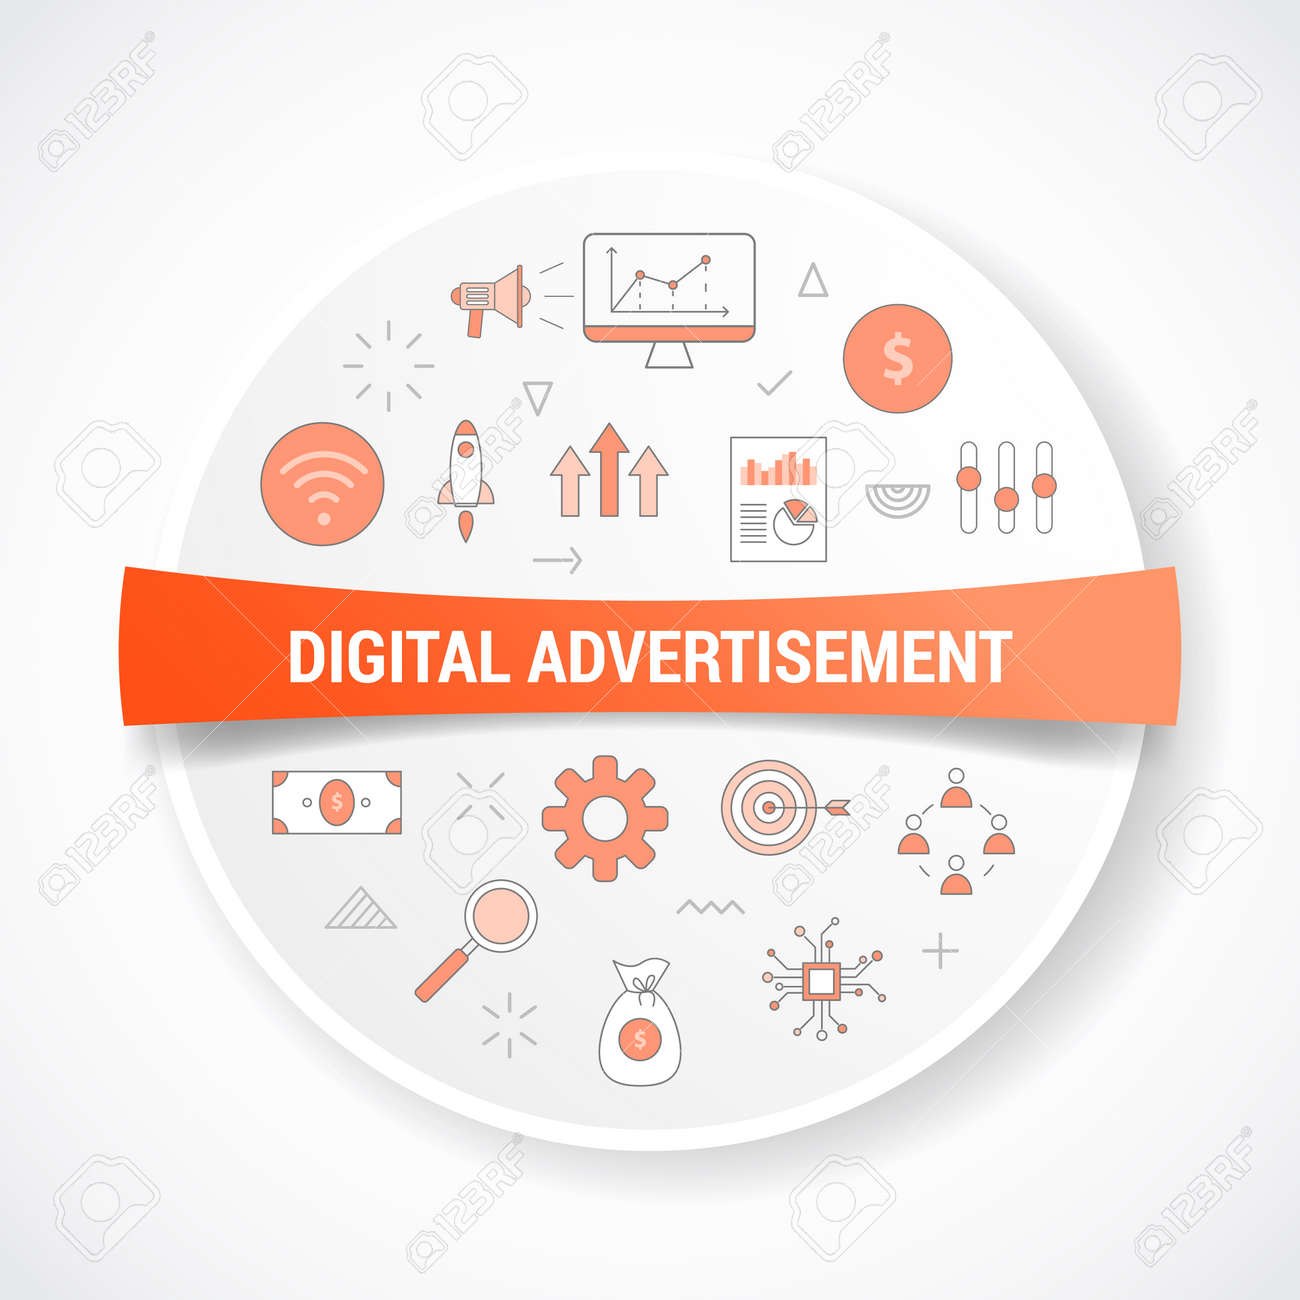 digital advertisement concept with icon concept with round or circle shape vector illustration - 166430016